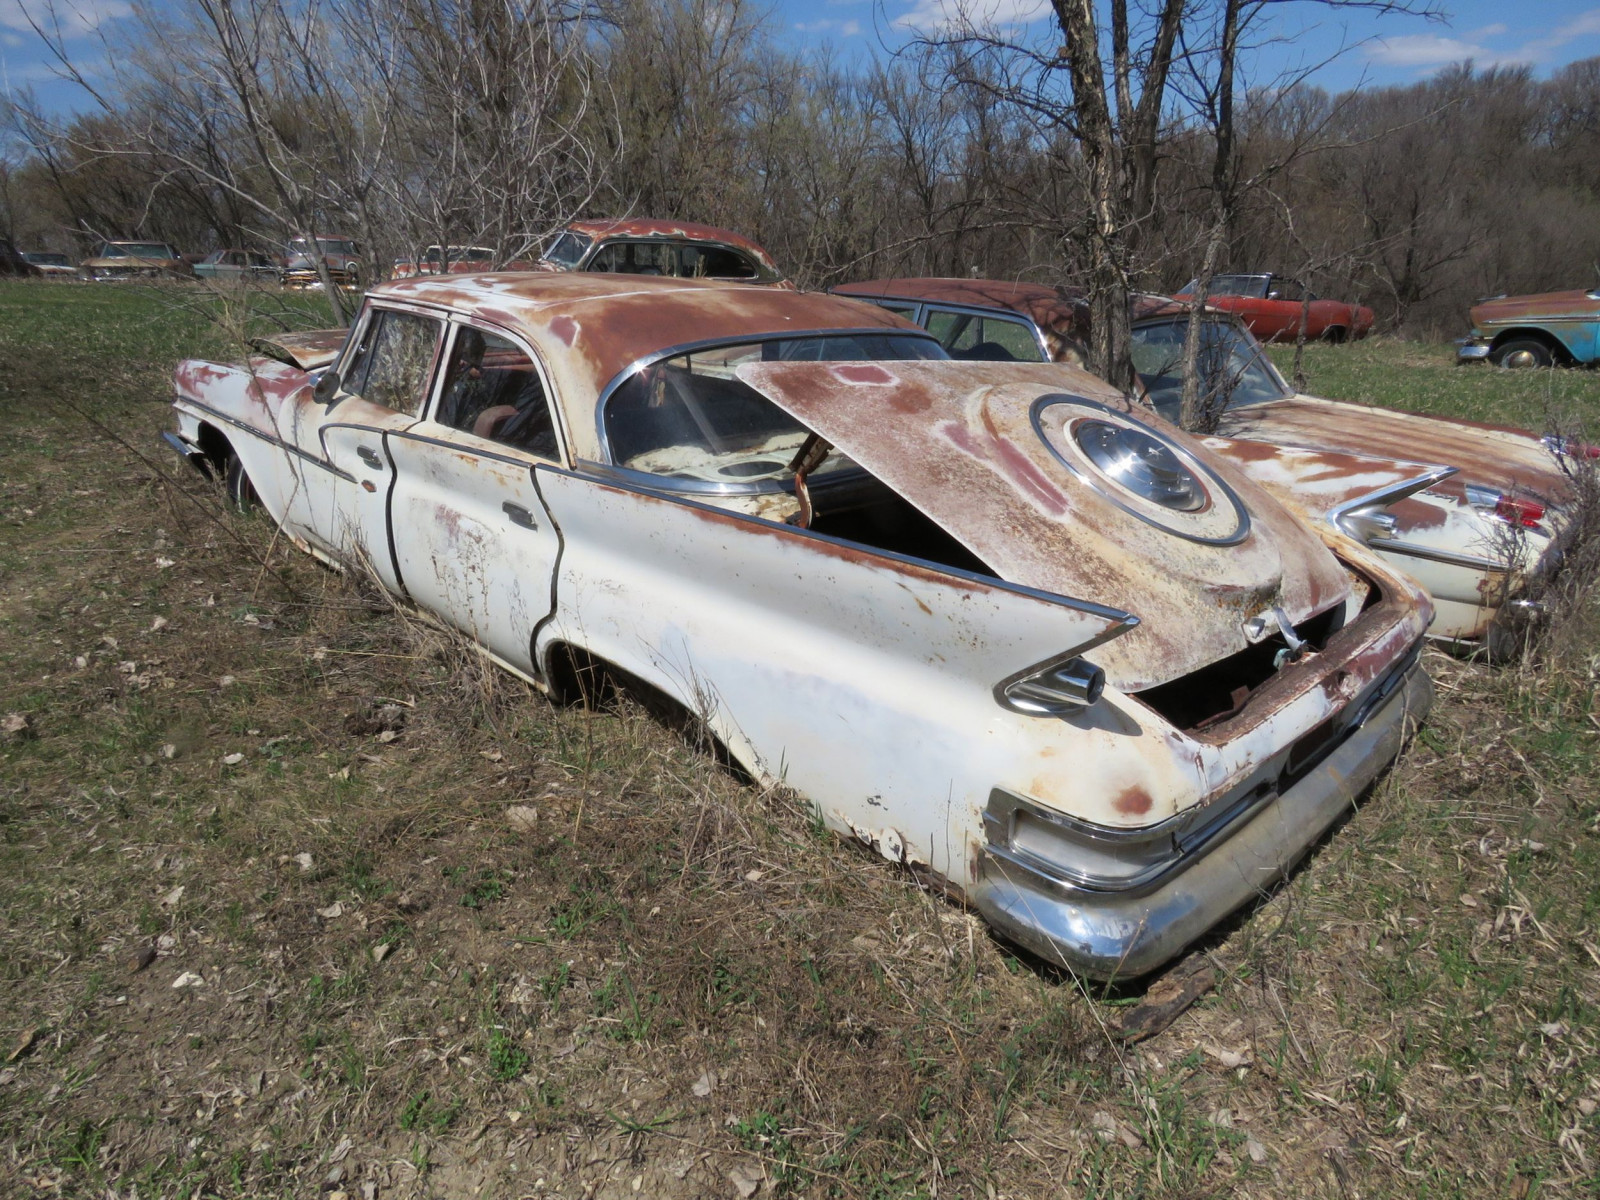 1961 Chrysler 4dr Sedan 6113184792 - Image 2